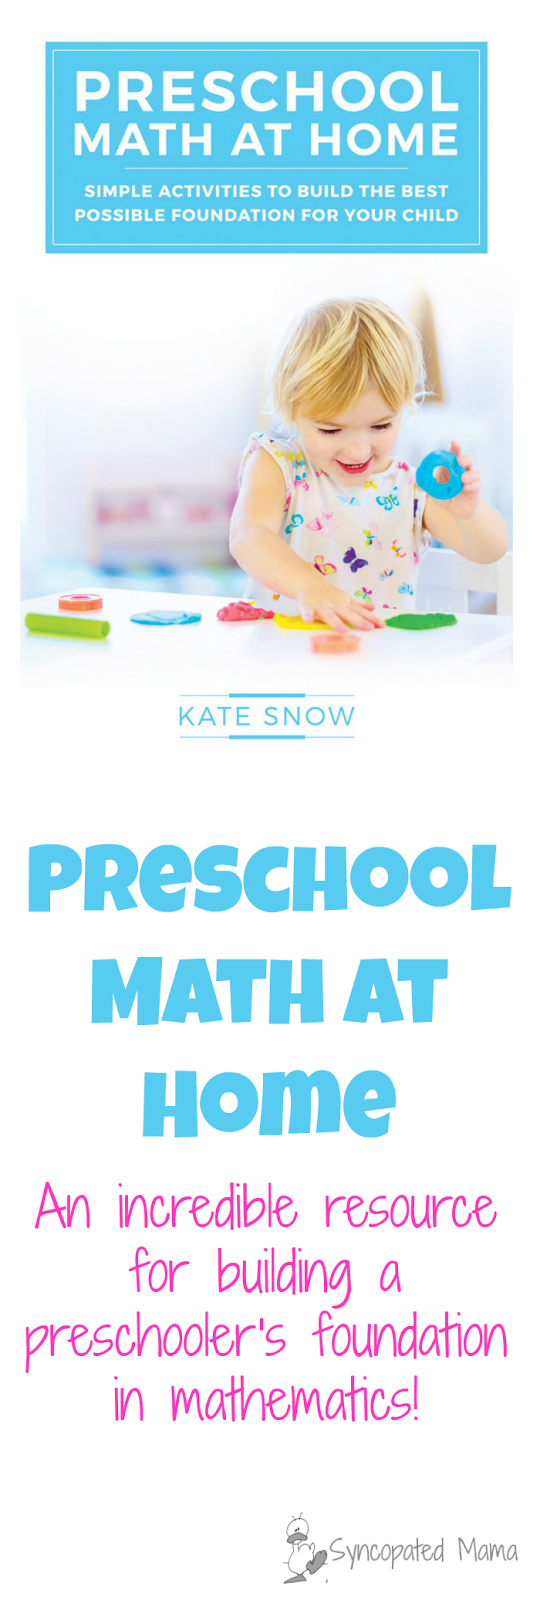 Syncopated Mama: Preschool Math at Home by Kate Snow